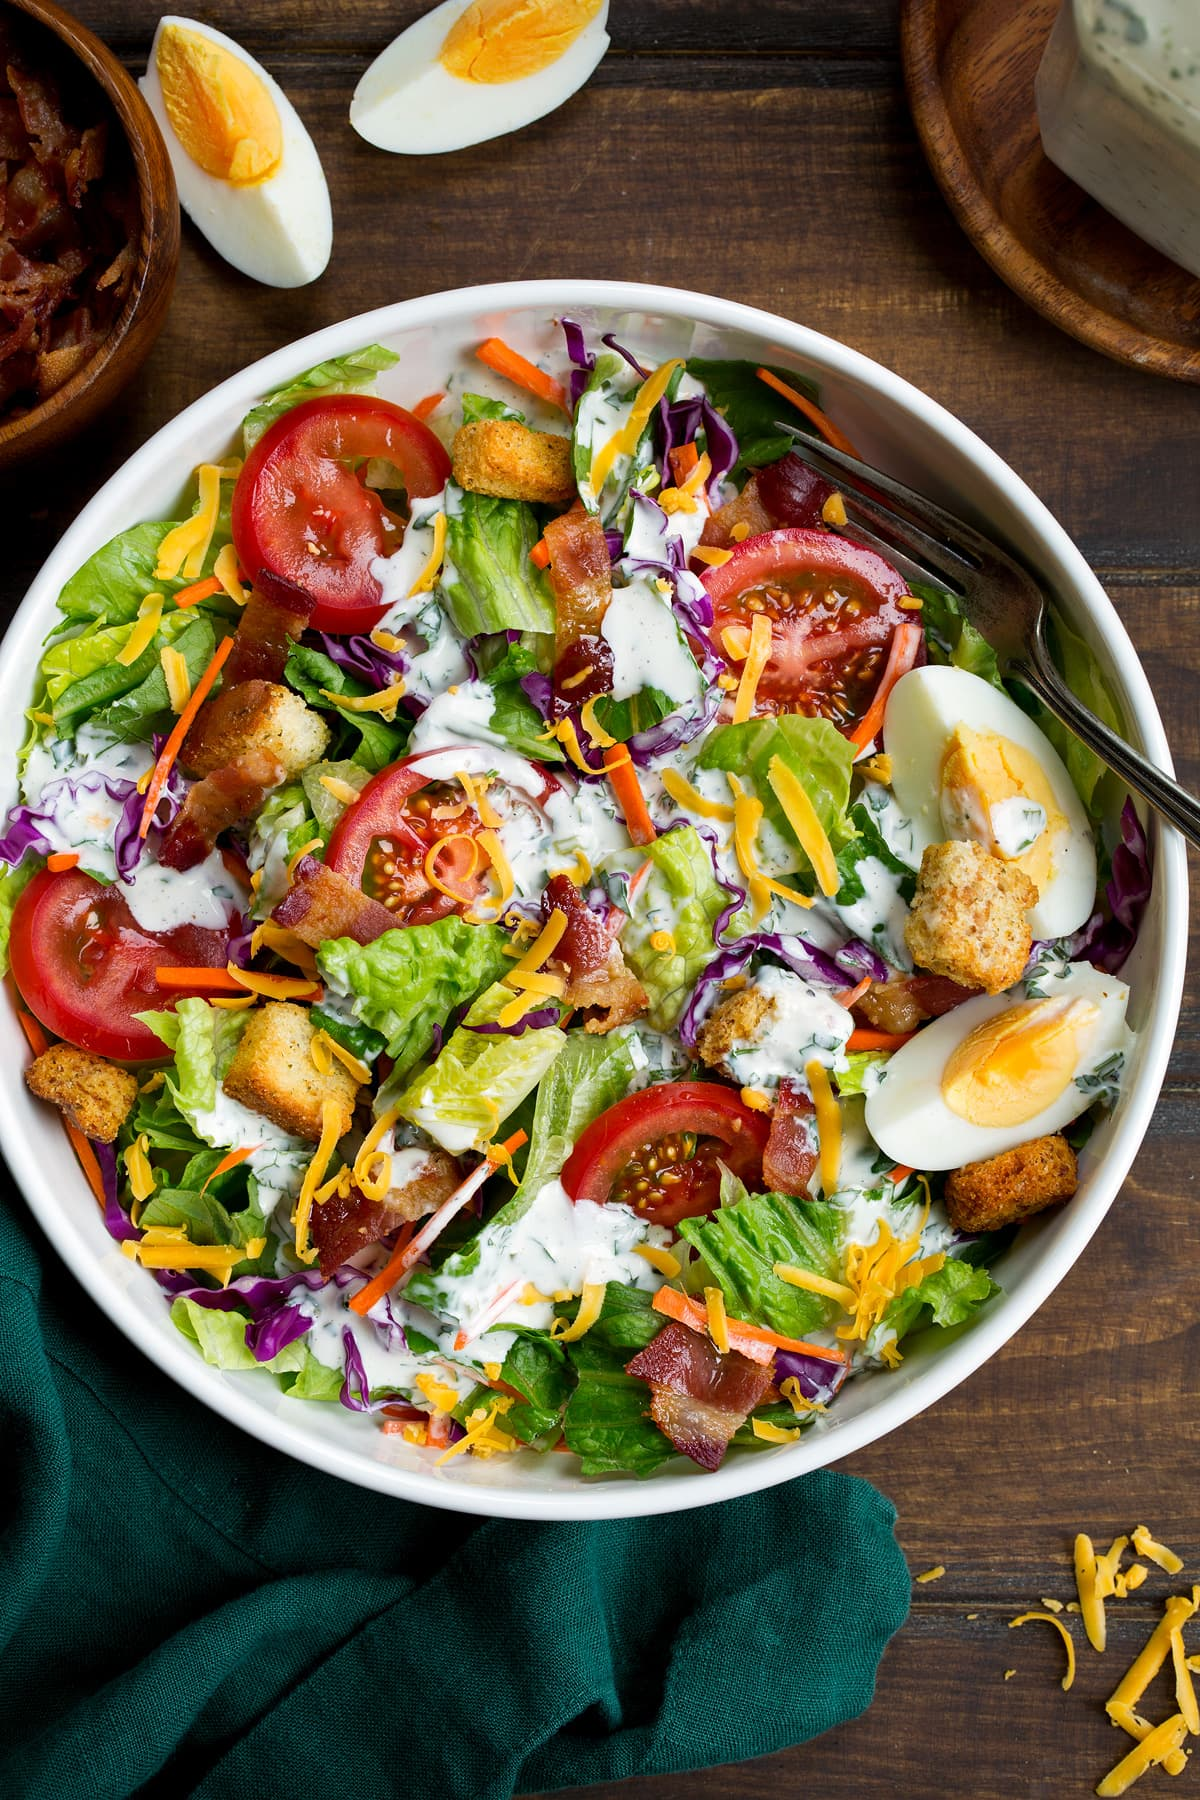 Homemade ranch dressing shown over a green salad.